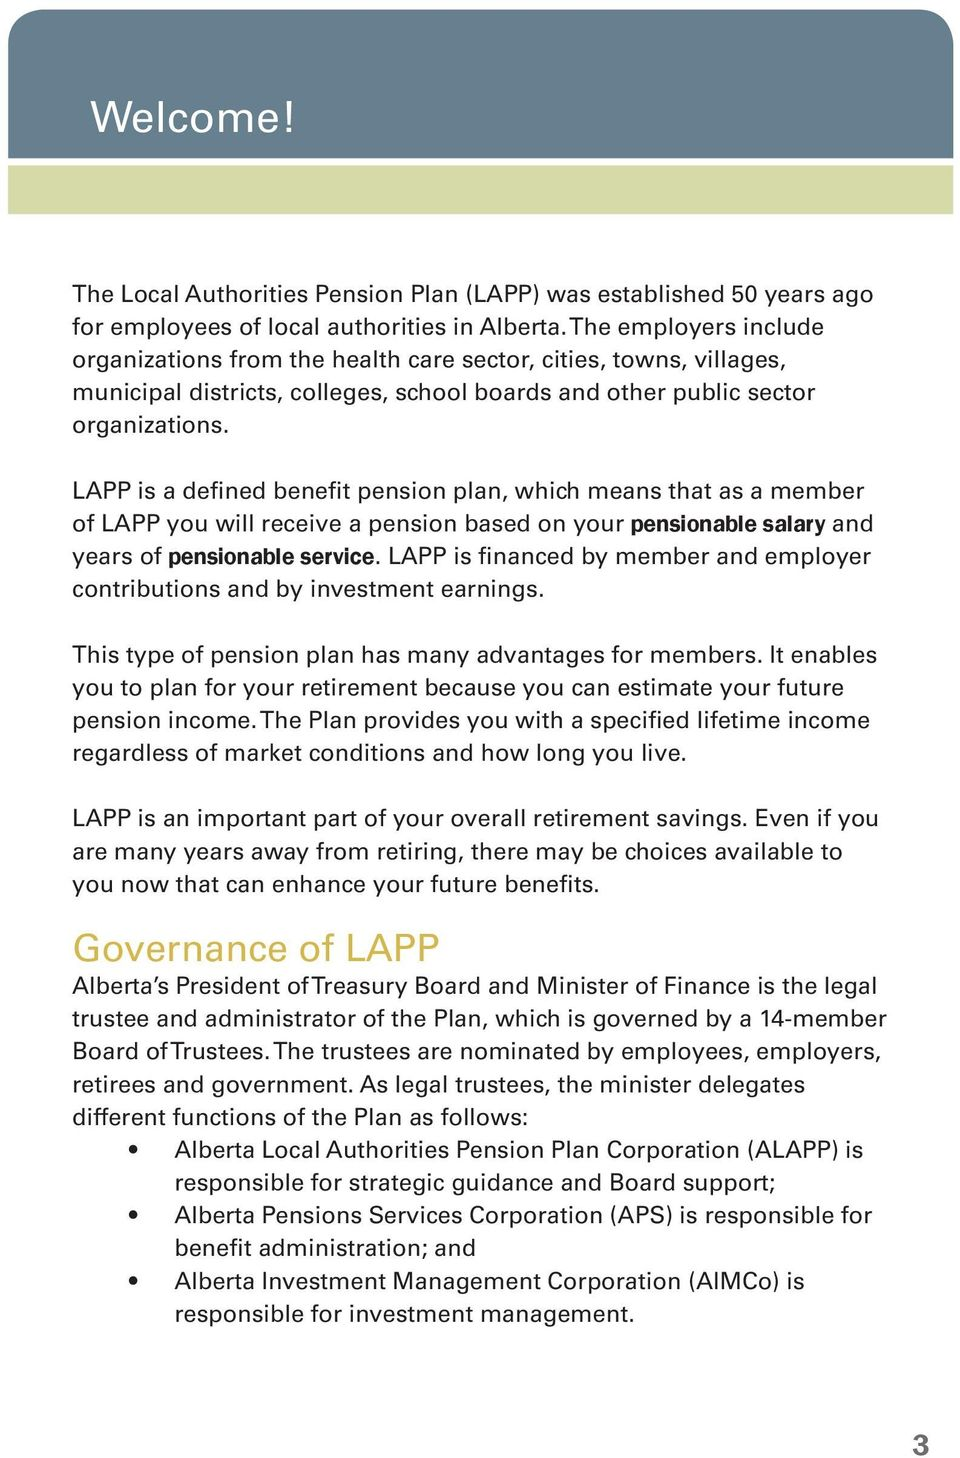 LAPP is a defined benefit pension plan, which means that as a member of LAPP you will receive a pension based on your pensionable salary and years of pensionable service.